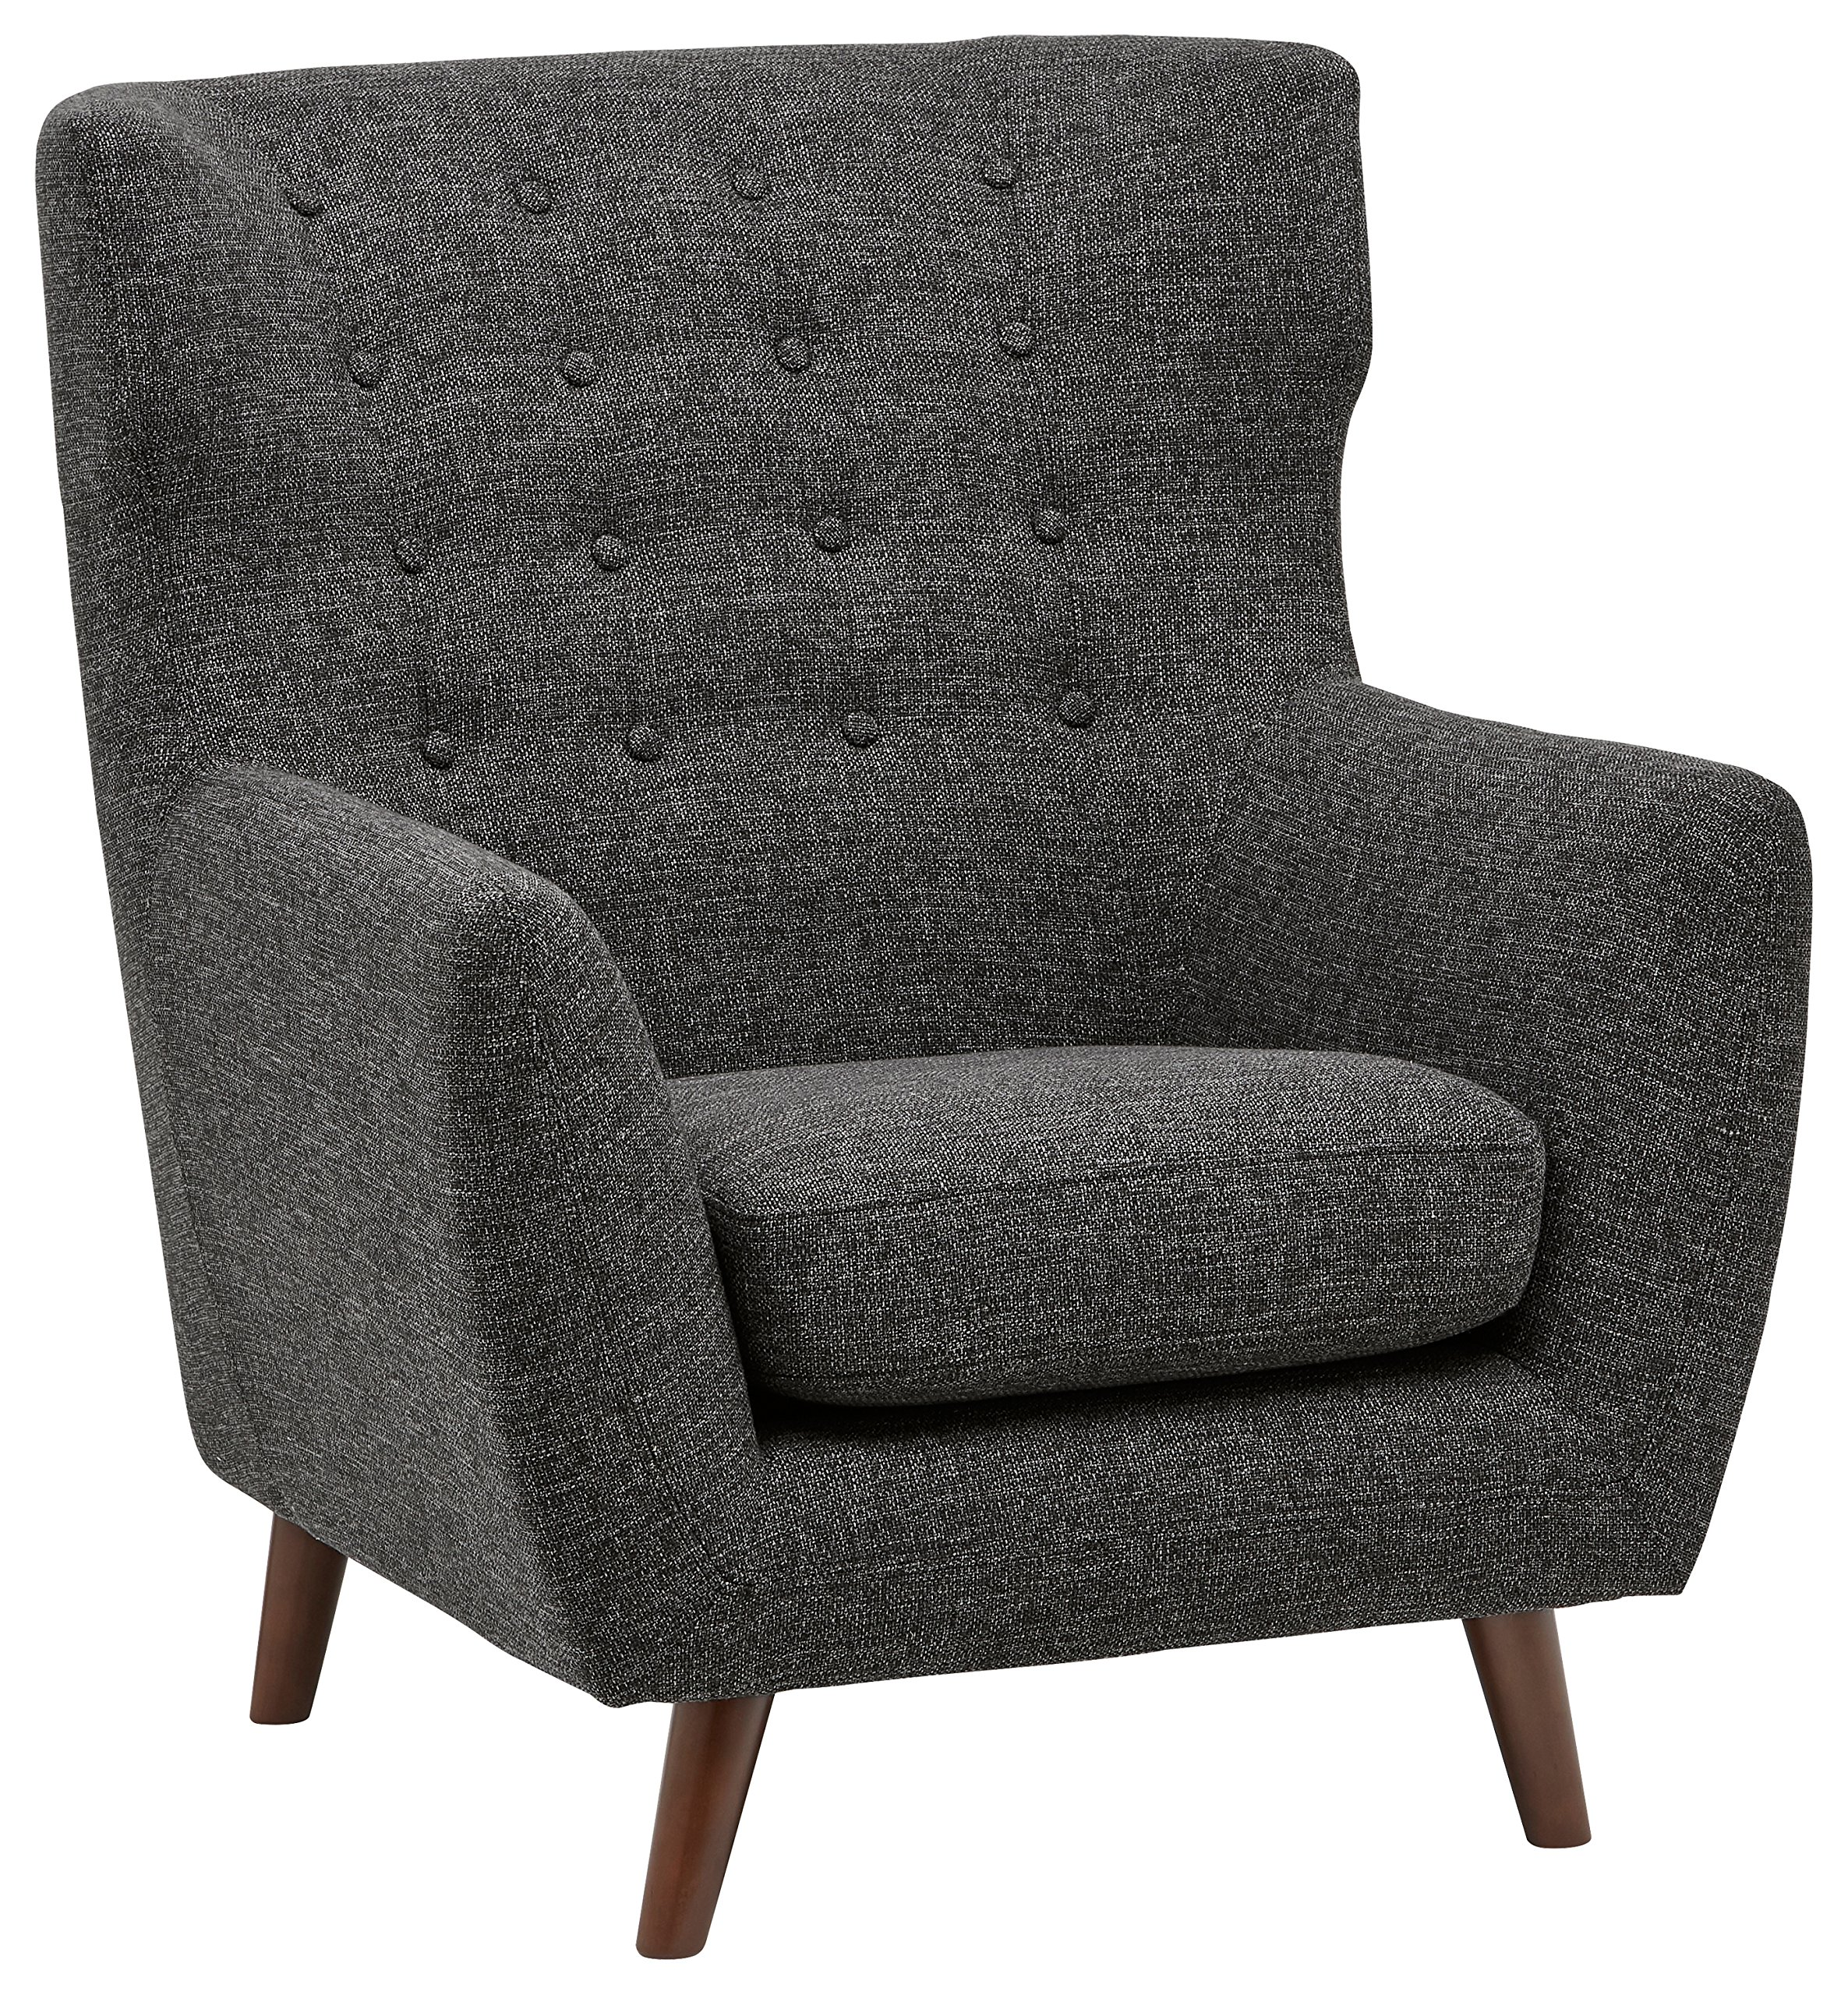 Rivet Hawthorne Mid-Century Tufted Modern Accent Chair, 35''W, Caviar by Rivet